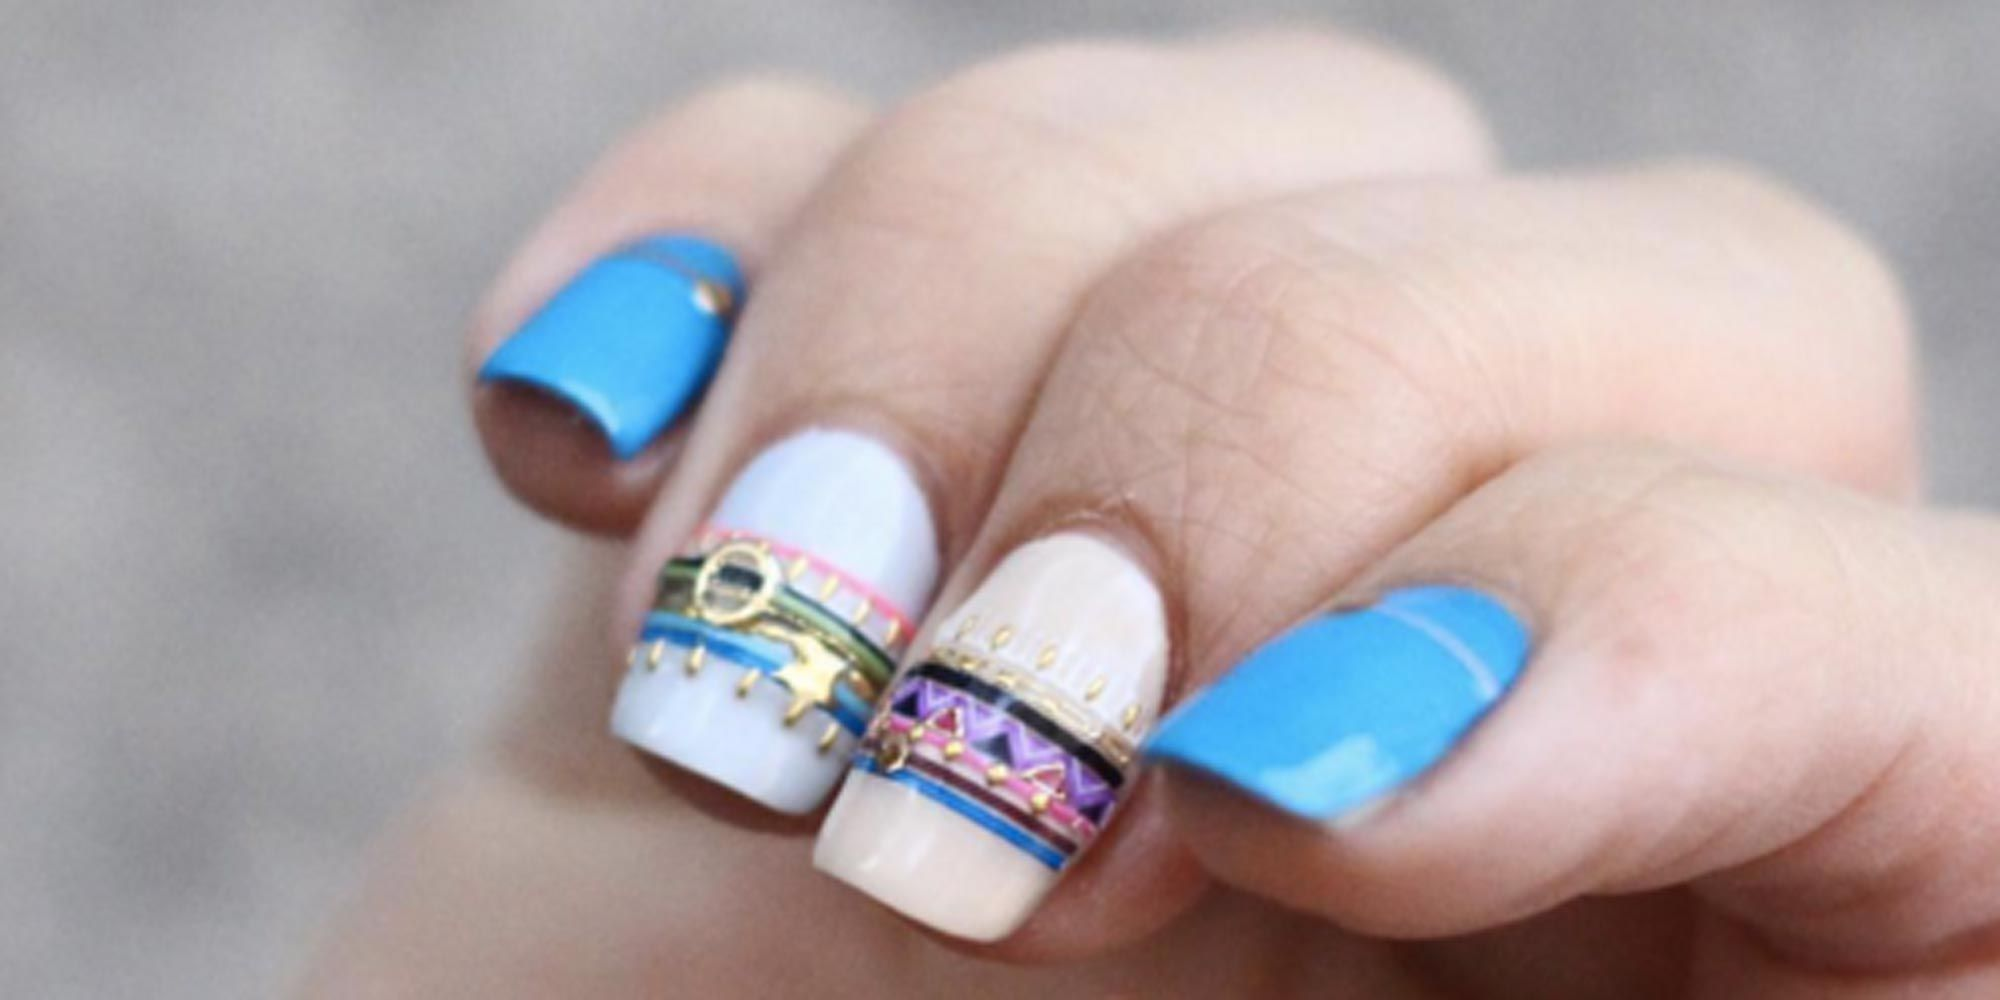 People Are Seriously Freaking Out Over the Bracelet Nail Trend